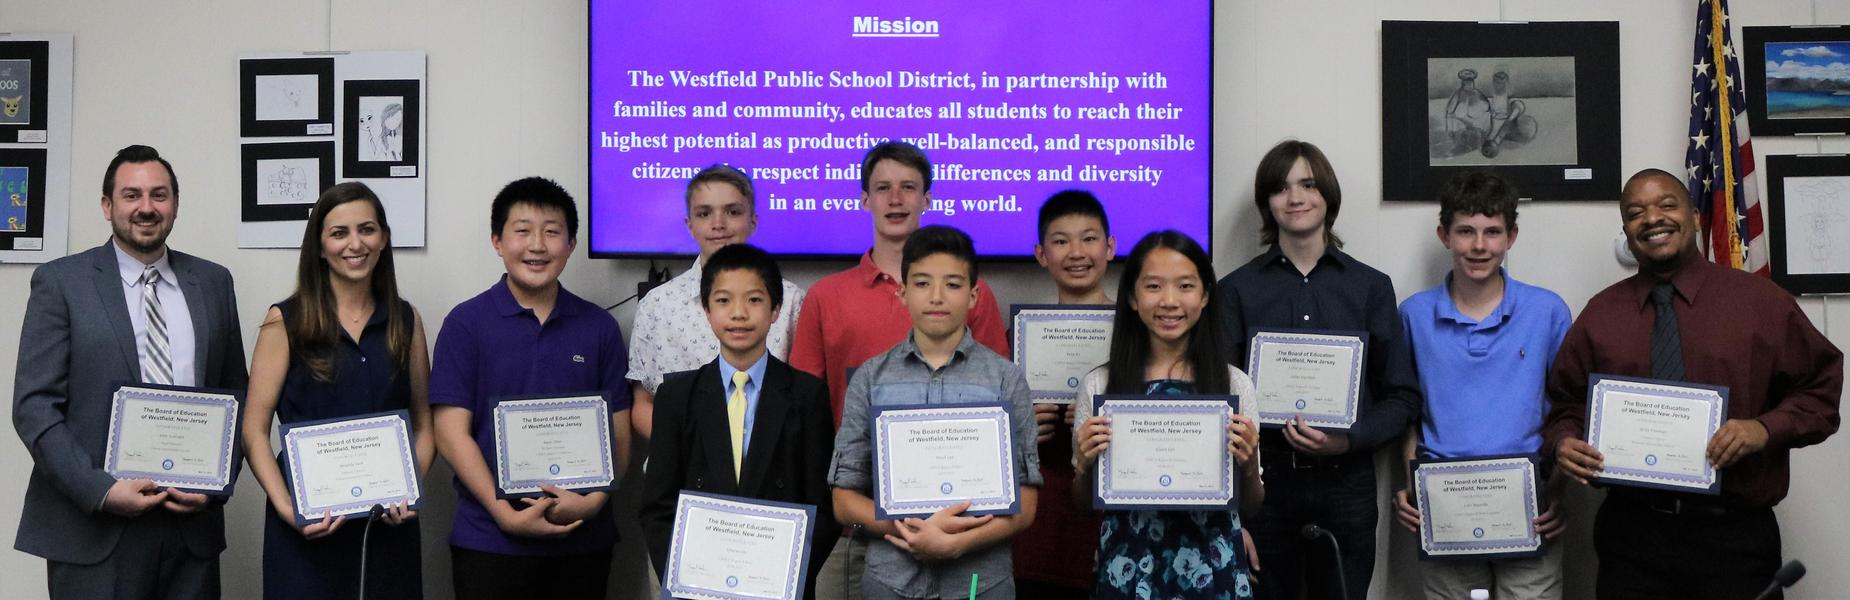 Photo of intermediate school student musicians and their instructors holding Certificates of Recognition at May 21 Board of Education meeting.